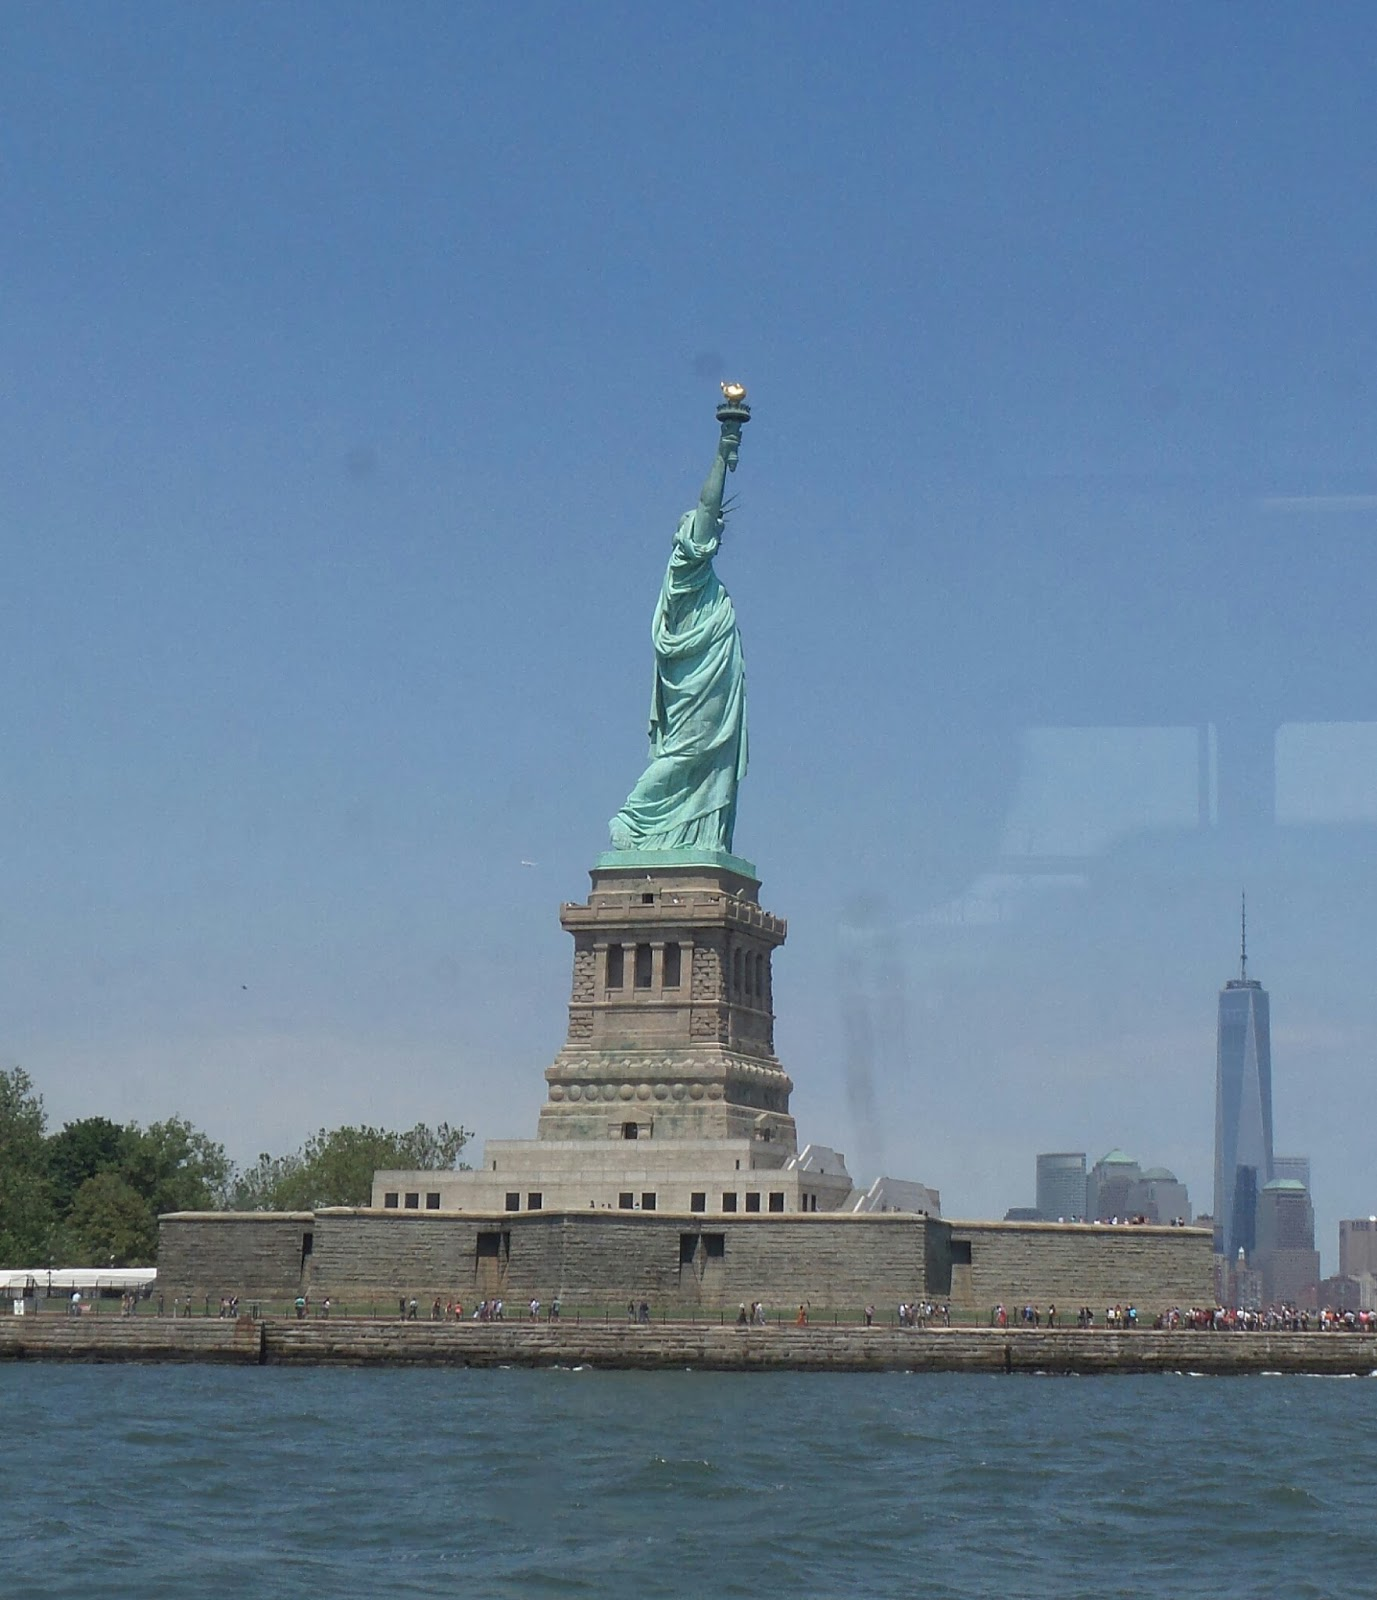 My Journey The Statue Of Liberty